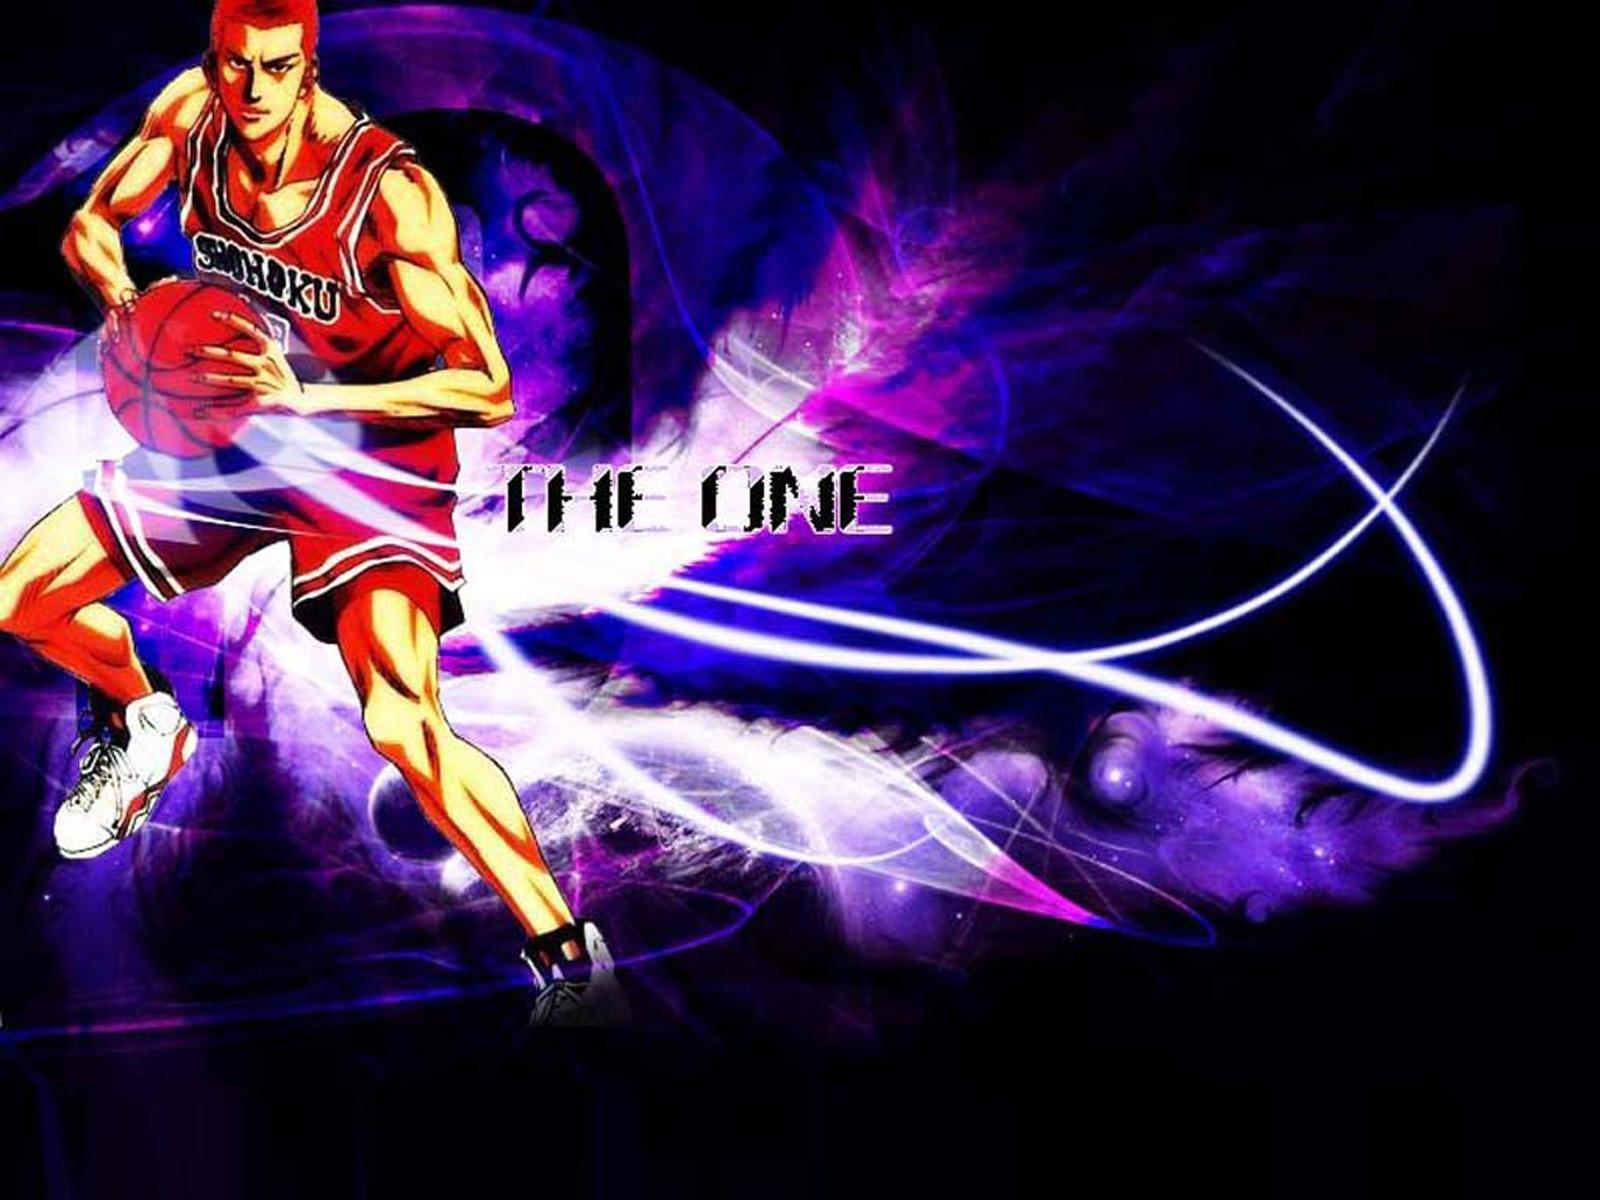 Best Nba Wallpapers Hd Slam Dunk Anime Wallpapers Wallpaper Cave